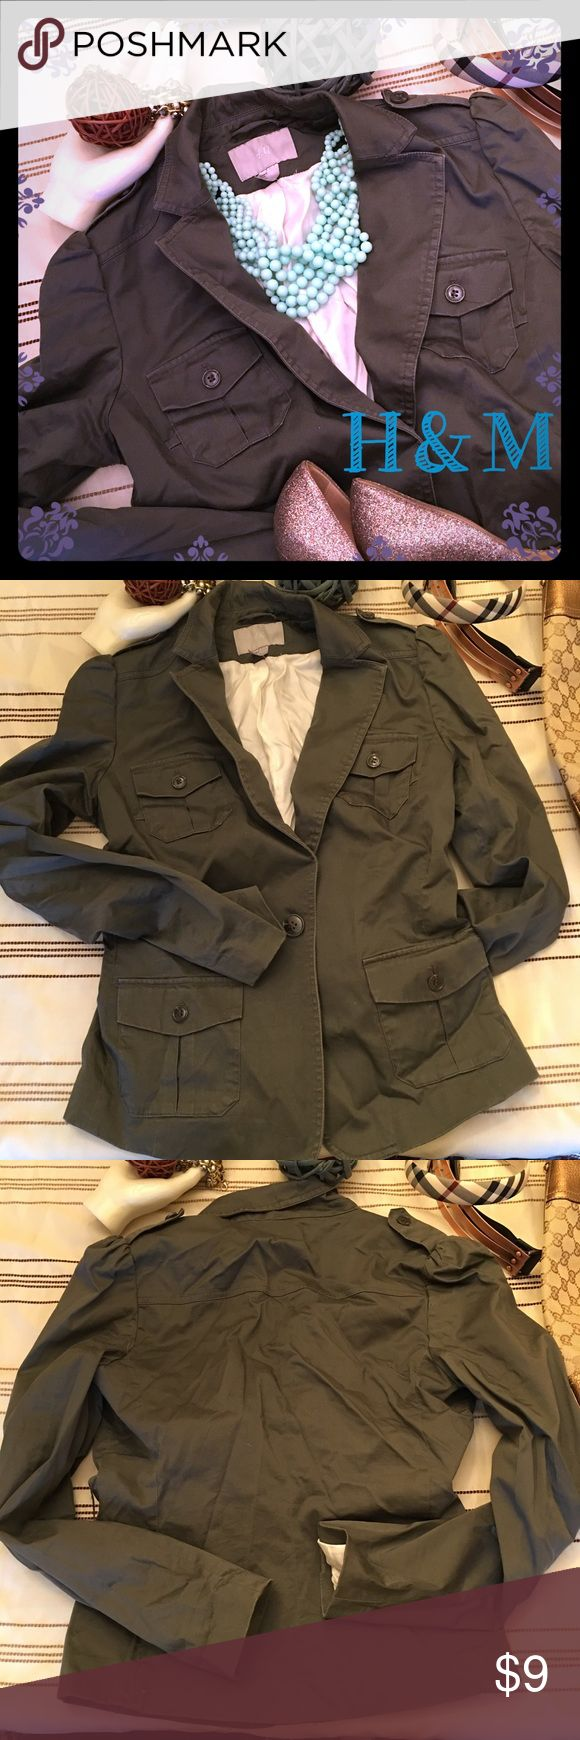 H&M olive green blazer jacket size US6 🌺 H&M olive green blazer jacket size US6 lined on the inside and all the buttons are still intact. Thanks for looking 🌺 H&M Jackets & Coats Blazers